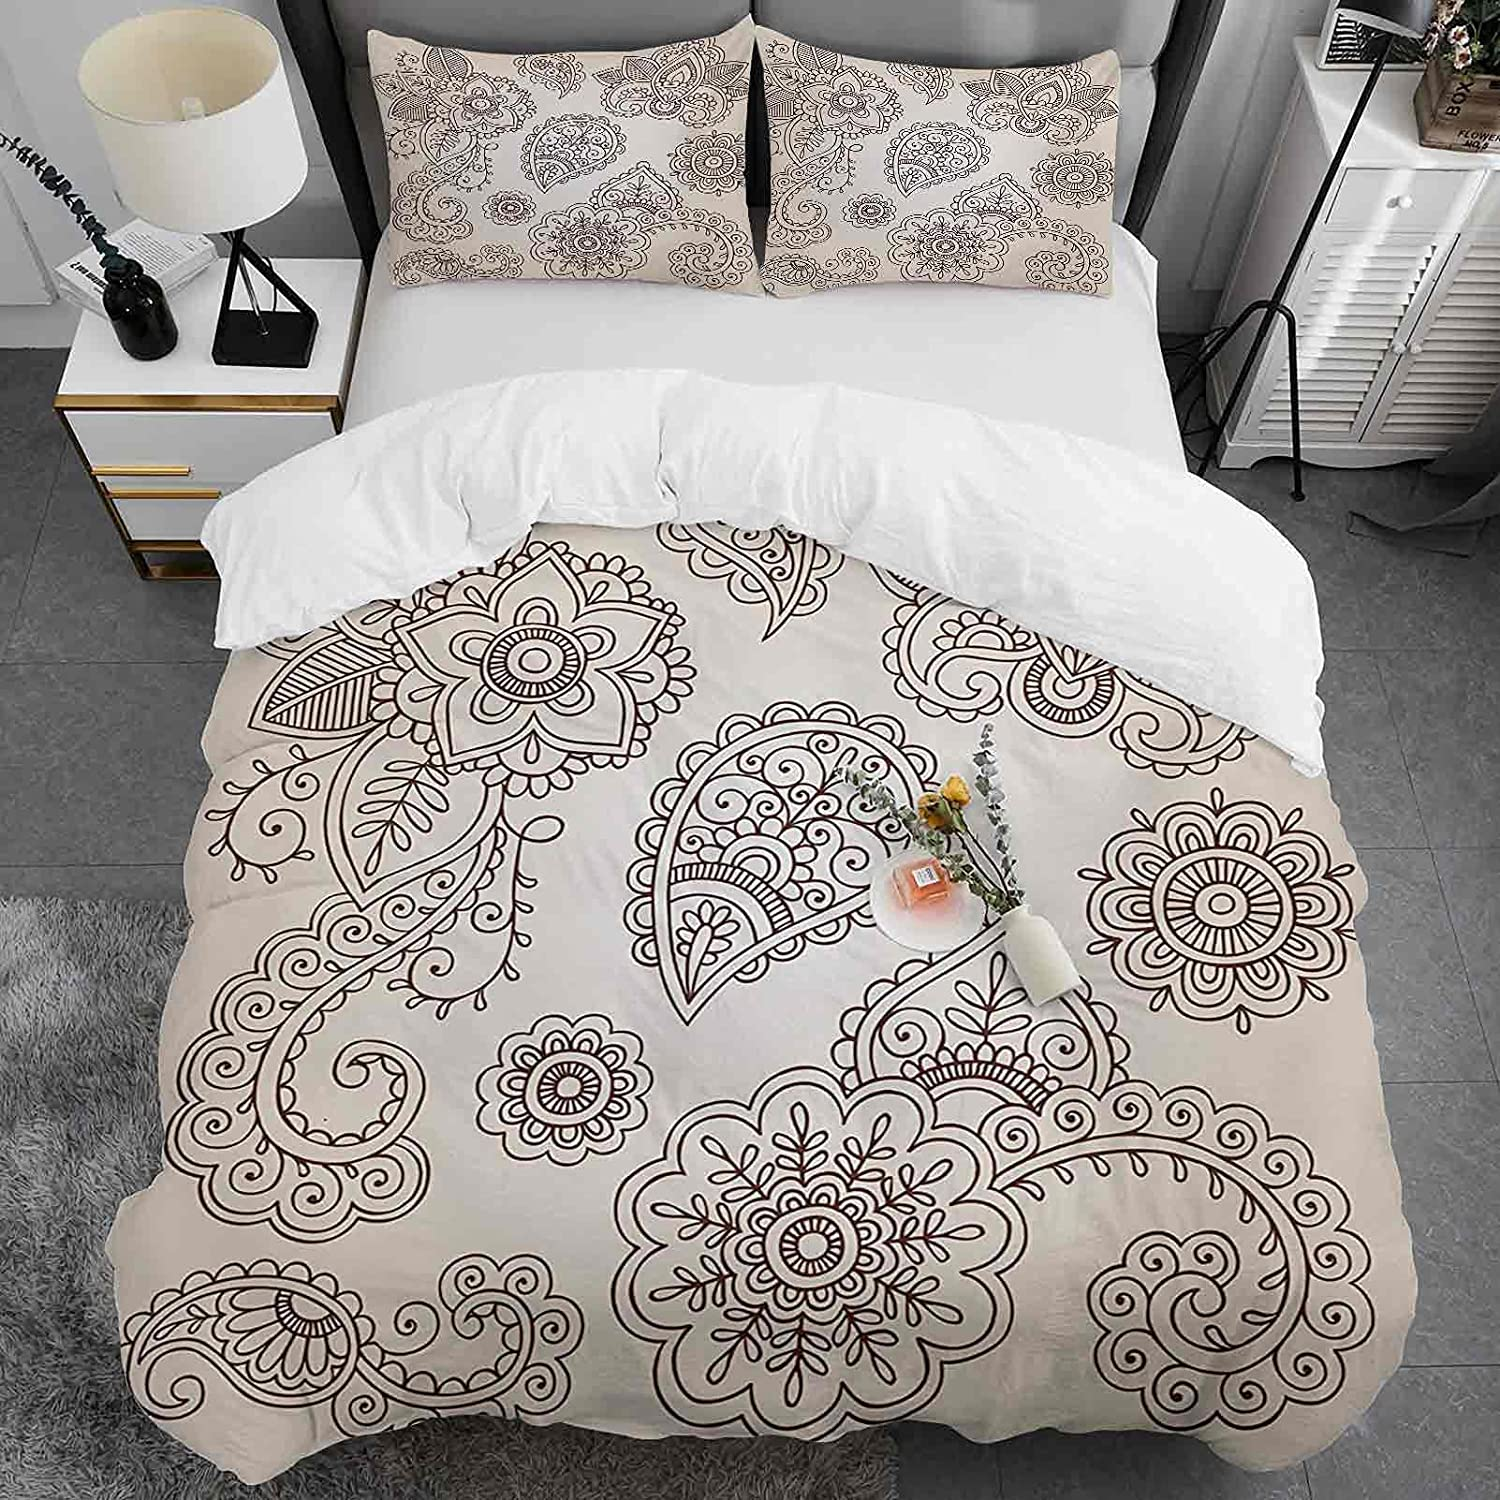 Custom Duvet Trust Cover Super popular specialty store Full Size 100% Pattern Henna Washed Microfib